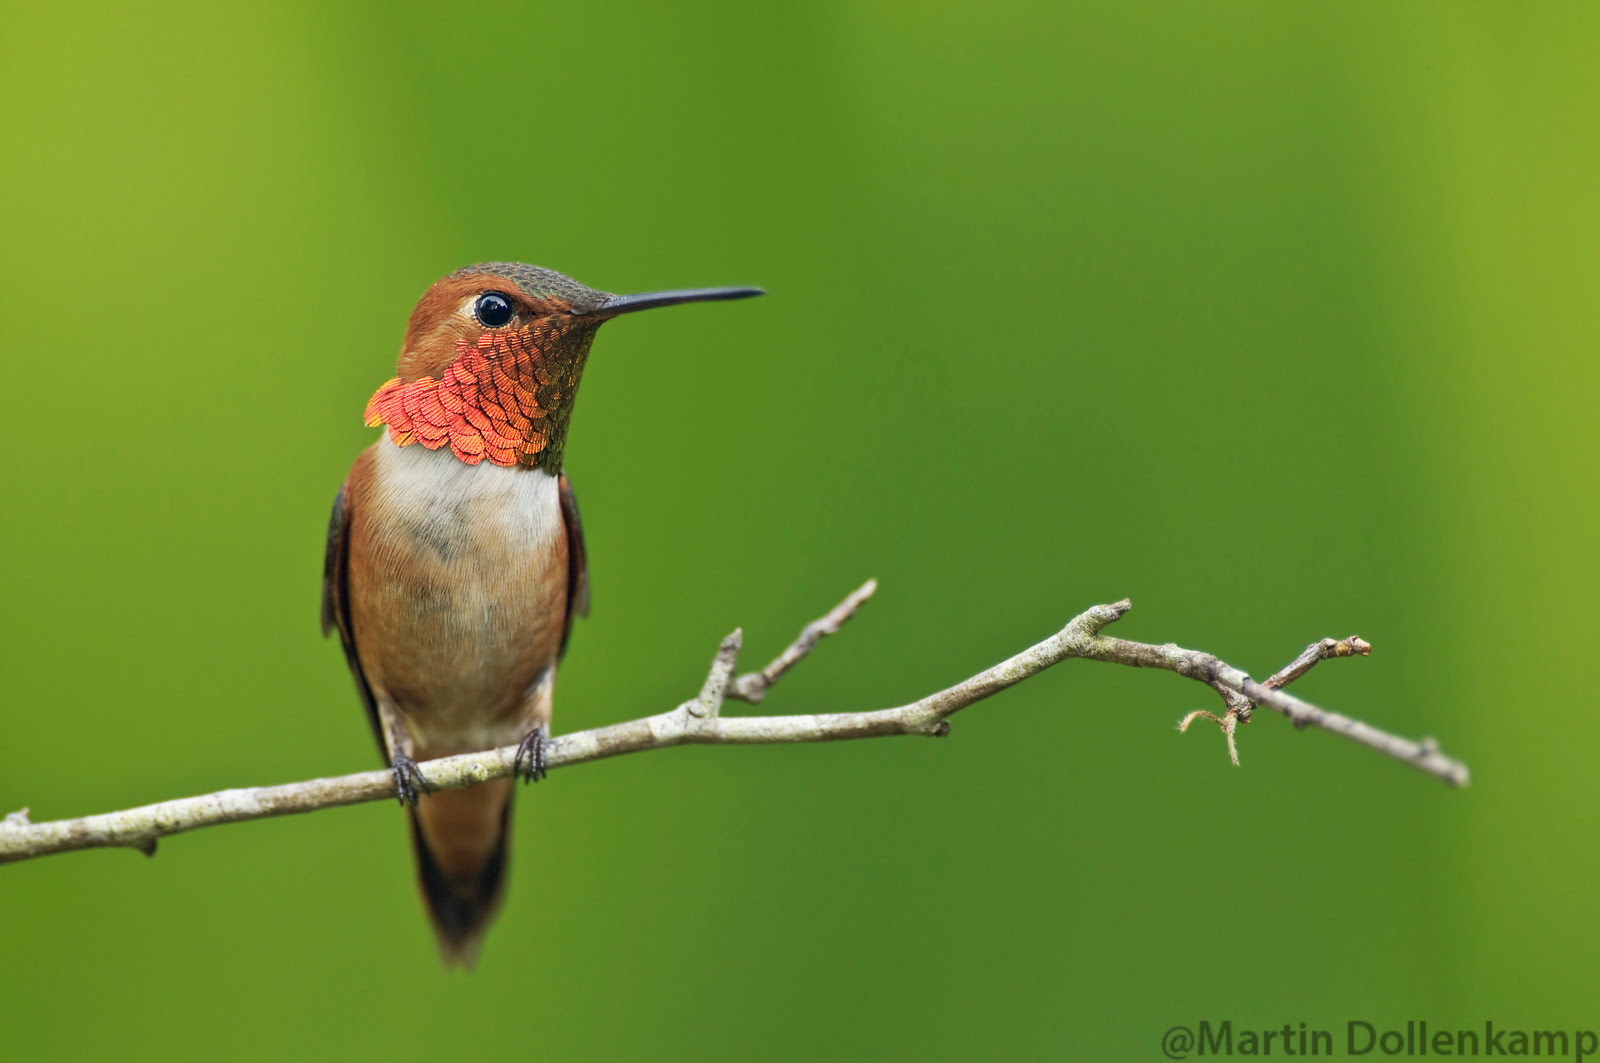 Rufous Hummingbird perched on a small branch